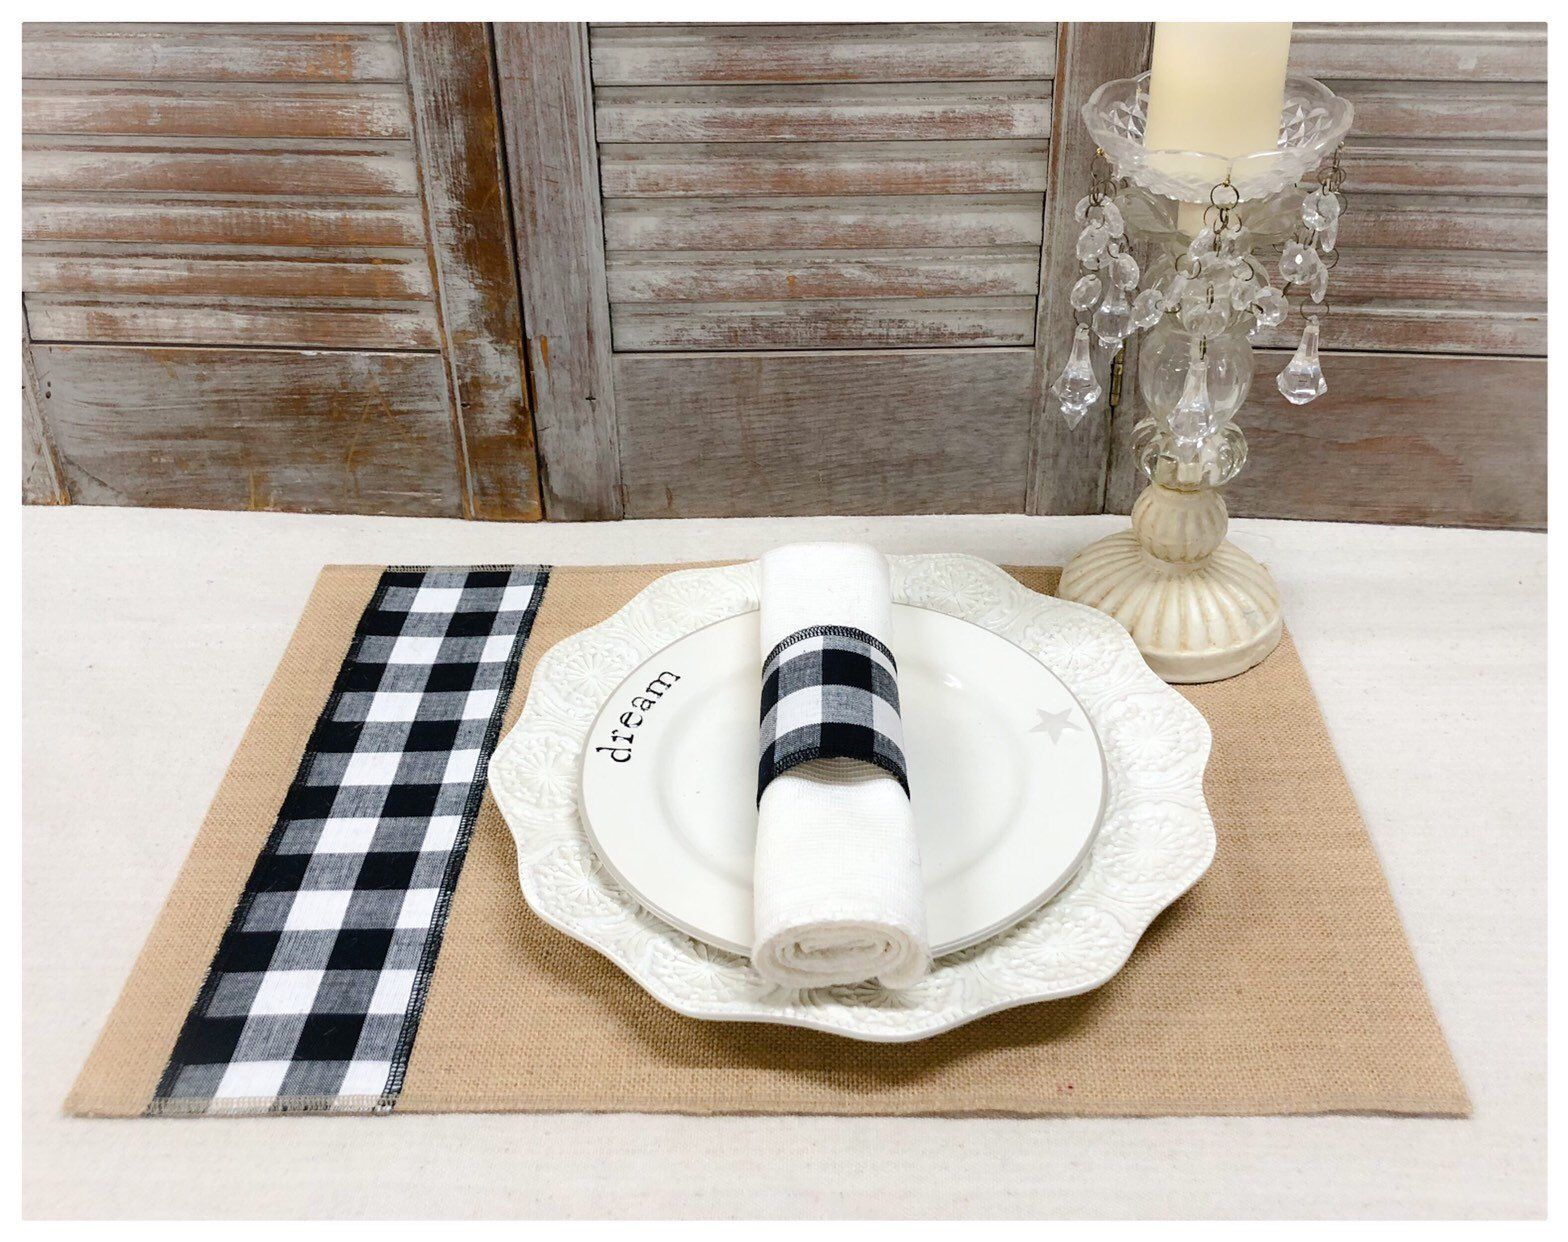 Burlap Placemat Sets With A Strip Of Black White Buffalo Etsy Burlap Napkins White Table Settings Placemats